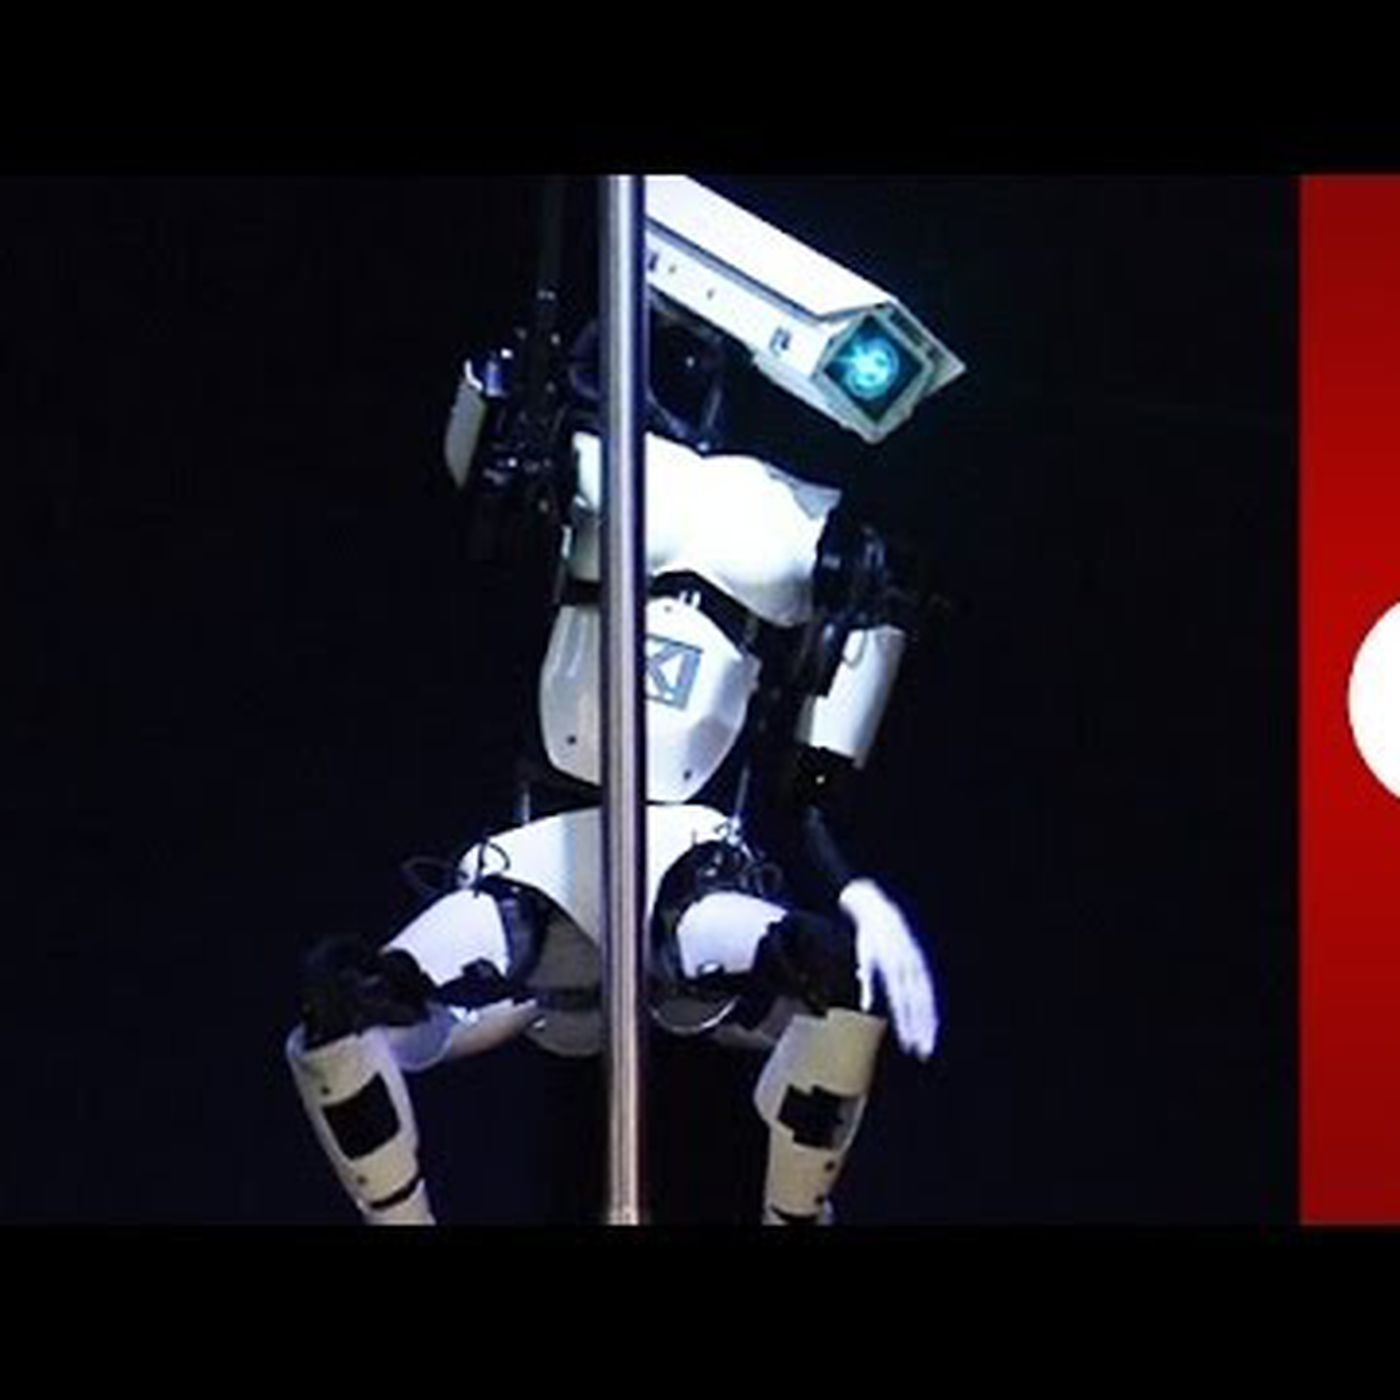 Here S The Story Behind That Pole Dancing Robot The Verge